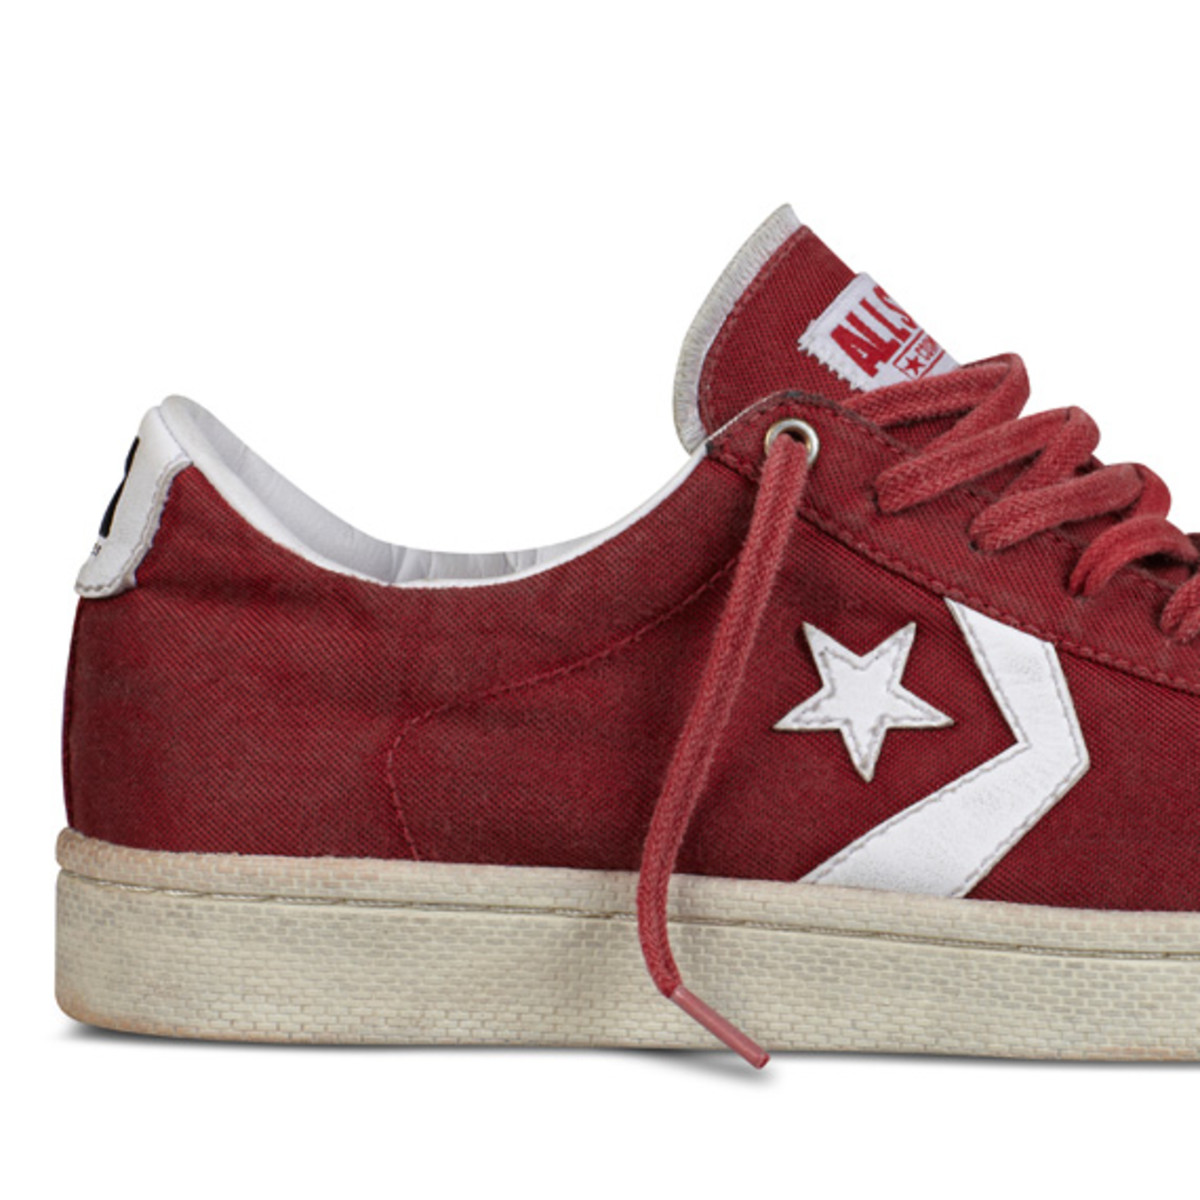 clot-converse-first-string-pro-leather-lo-05